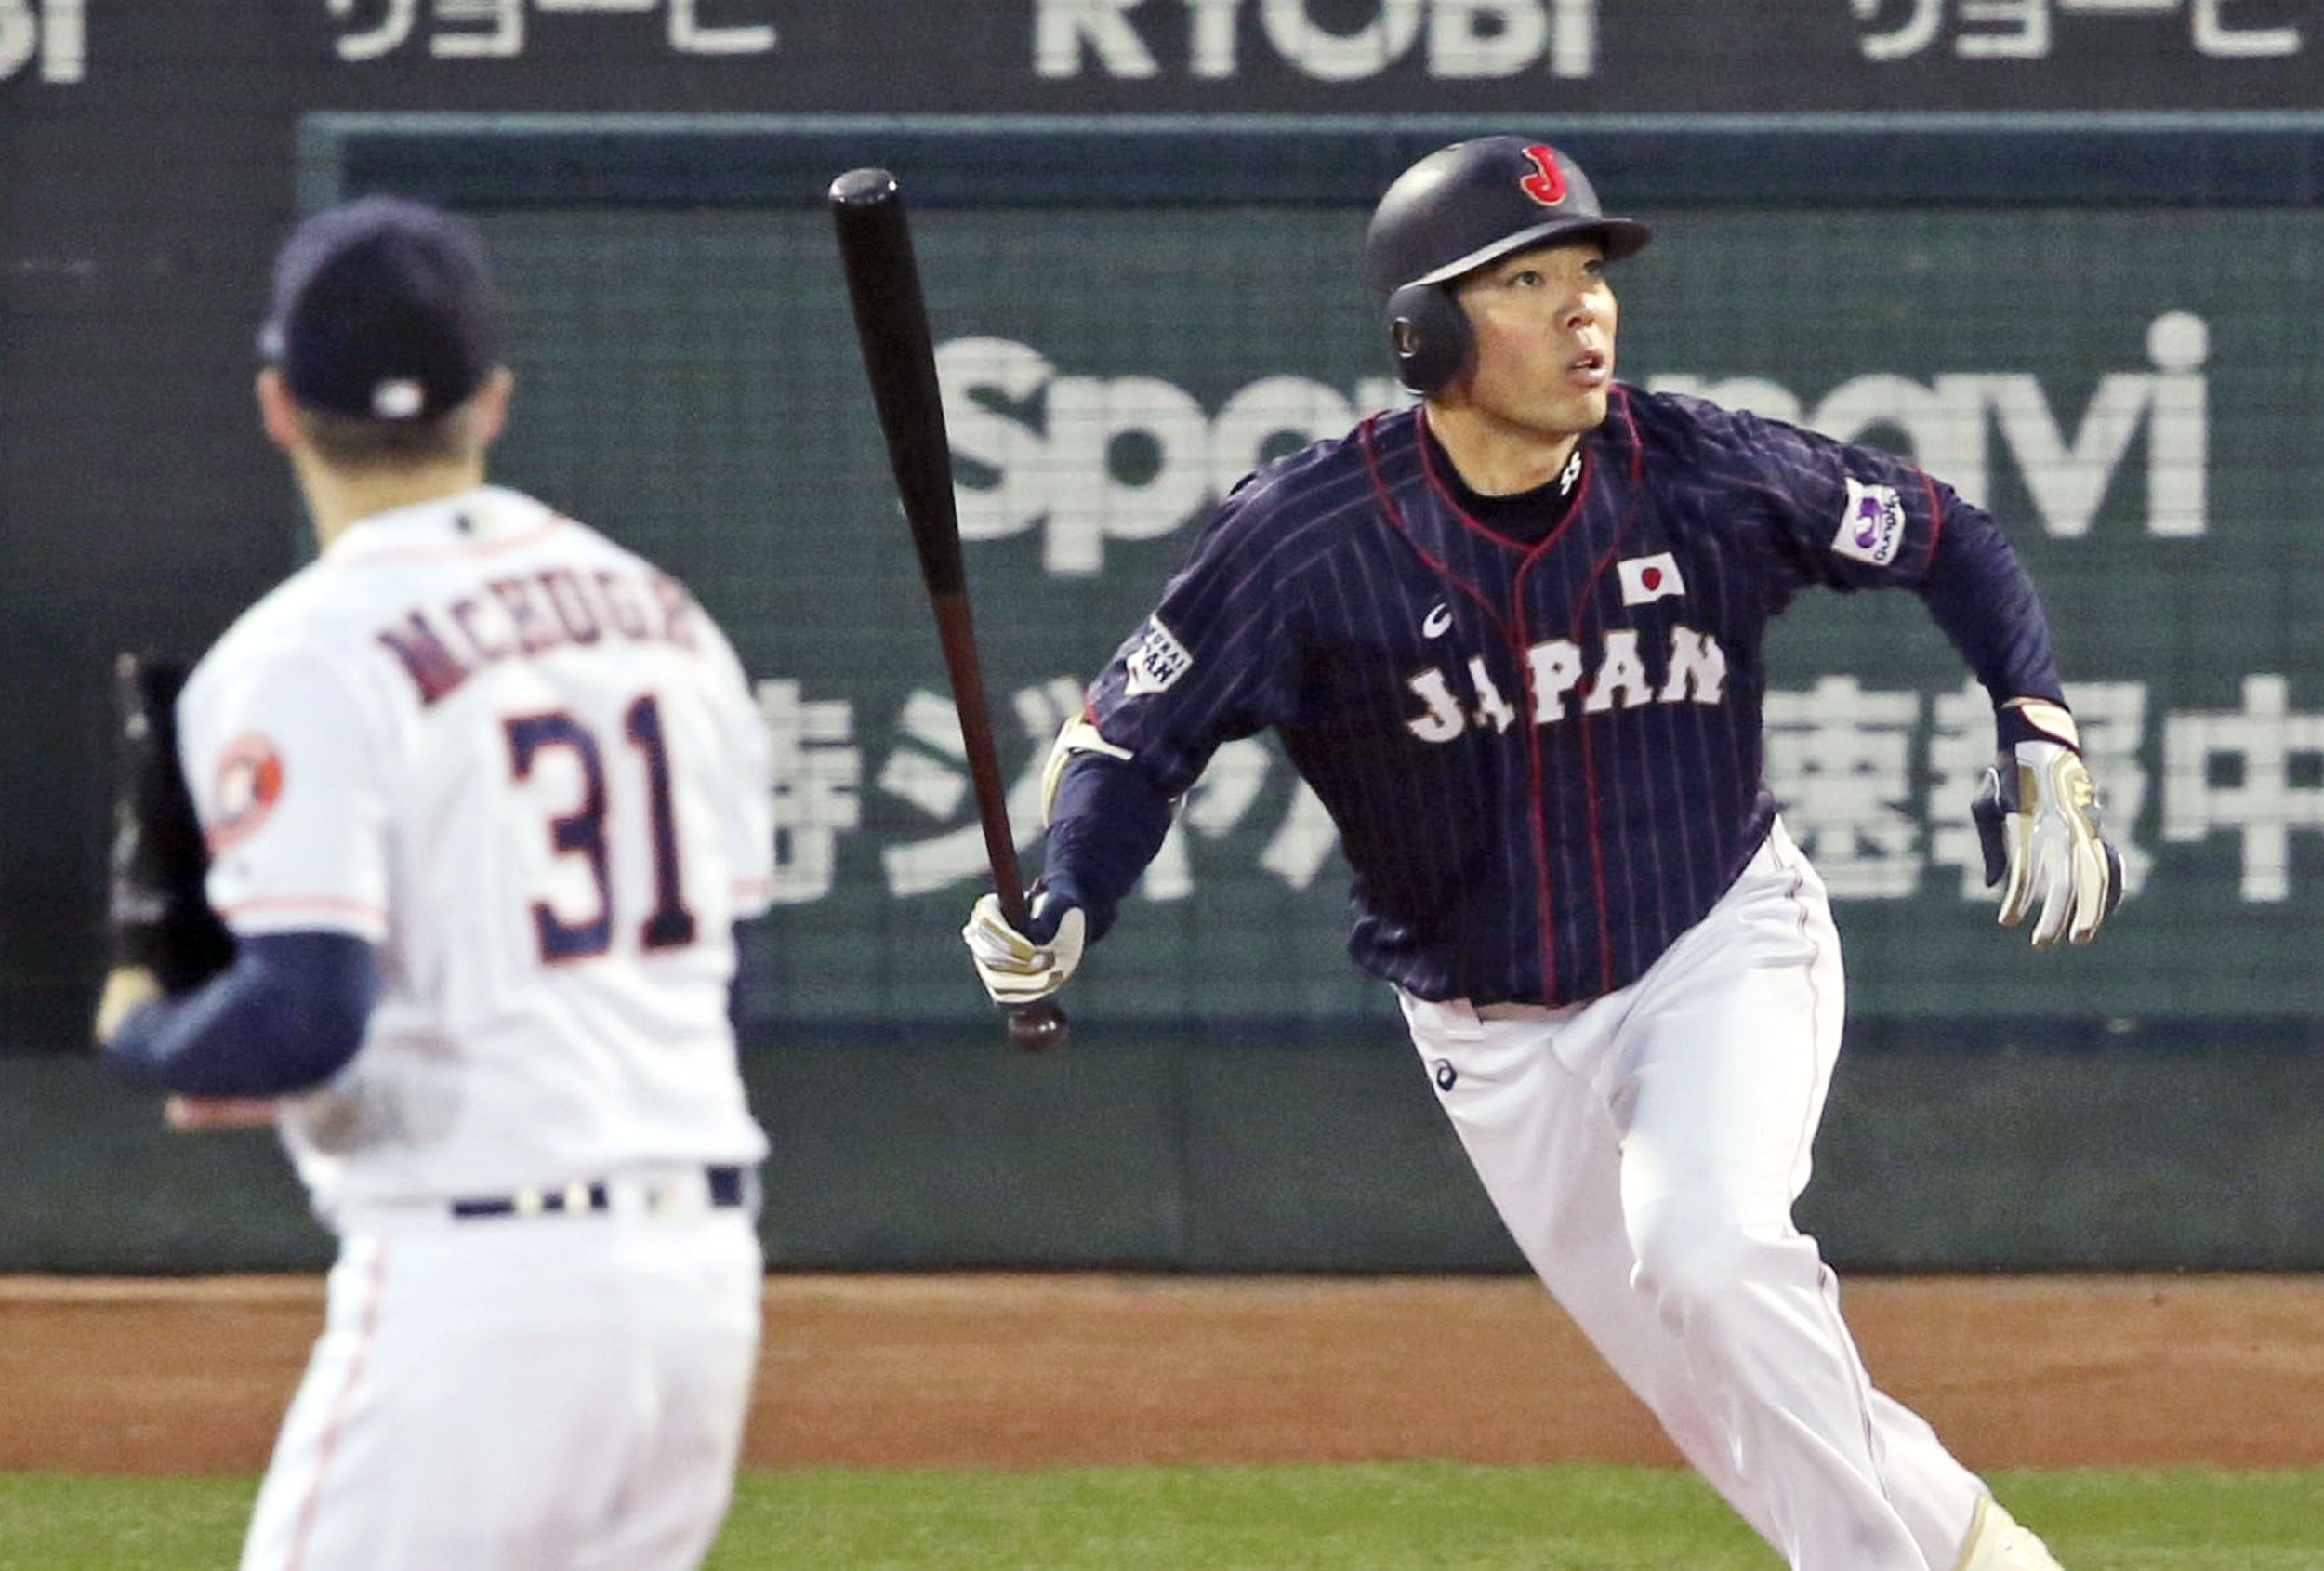 Japan rallies to beat MLB All-Stars 5-3 to lead series 3-1